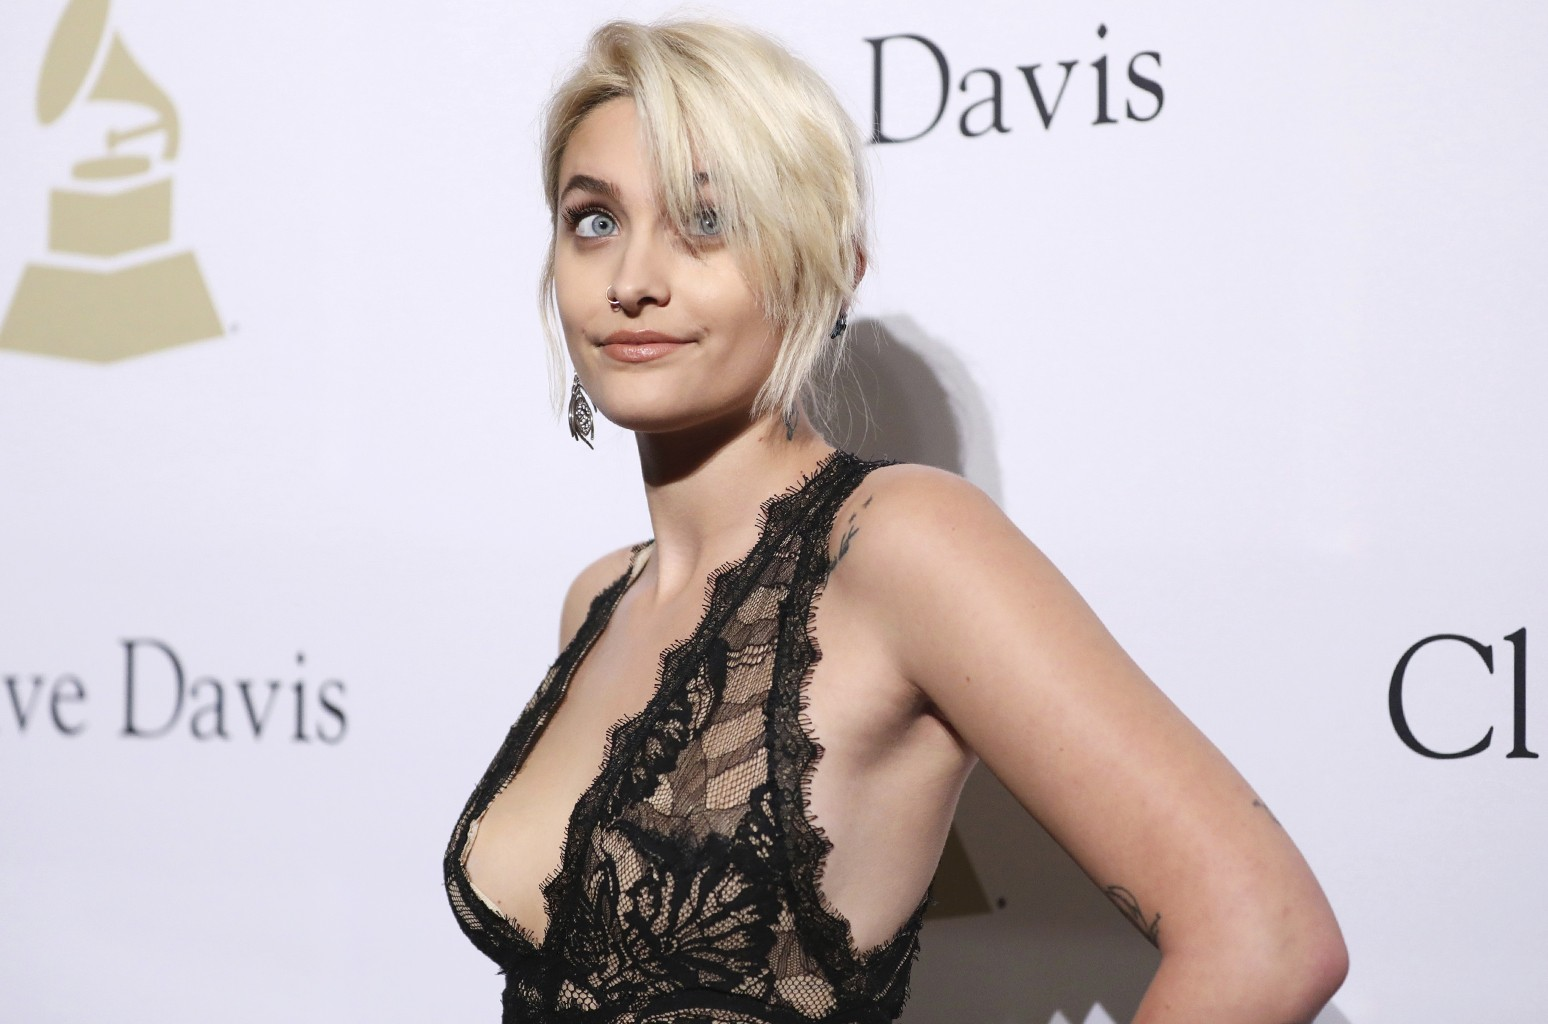 Paris Jackson attends the Clive Davis and The Recording Academy Pre-Grammy Gala at The Beverly Hilton Hotel on Feb. 11, 2017 in Beverly Hills, Calif.